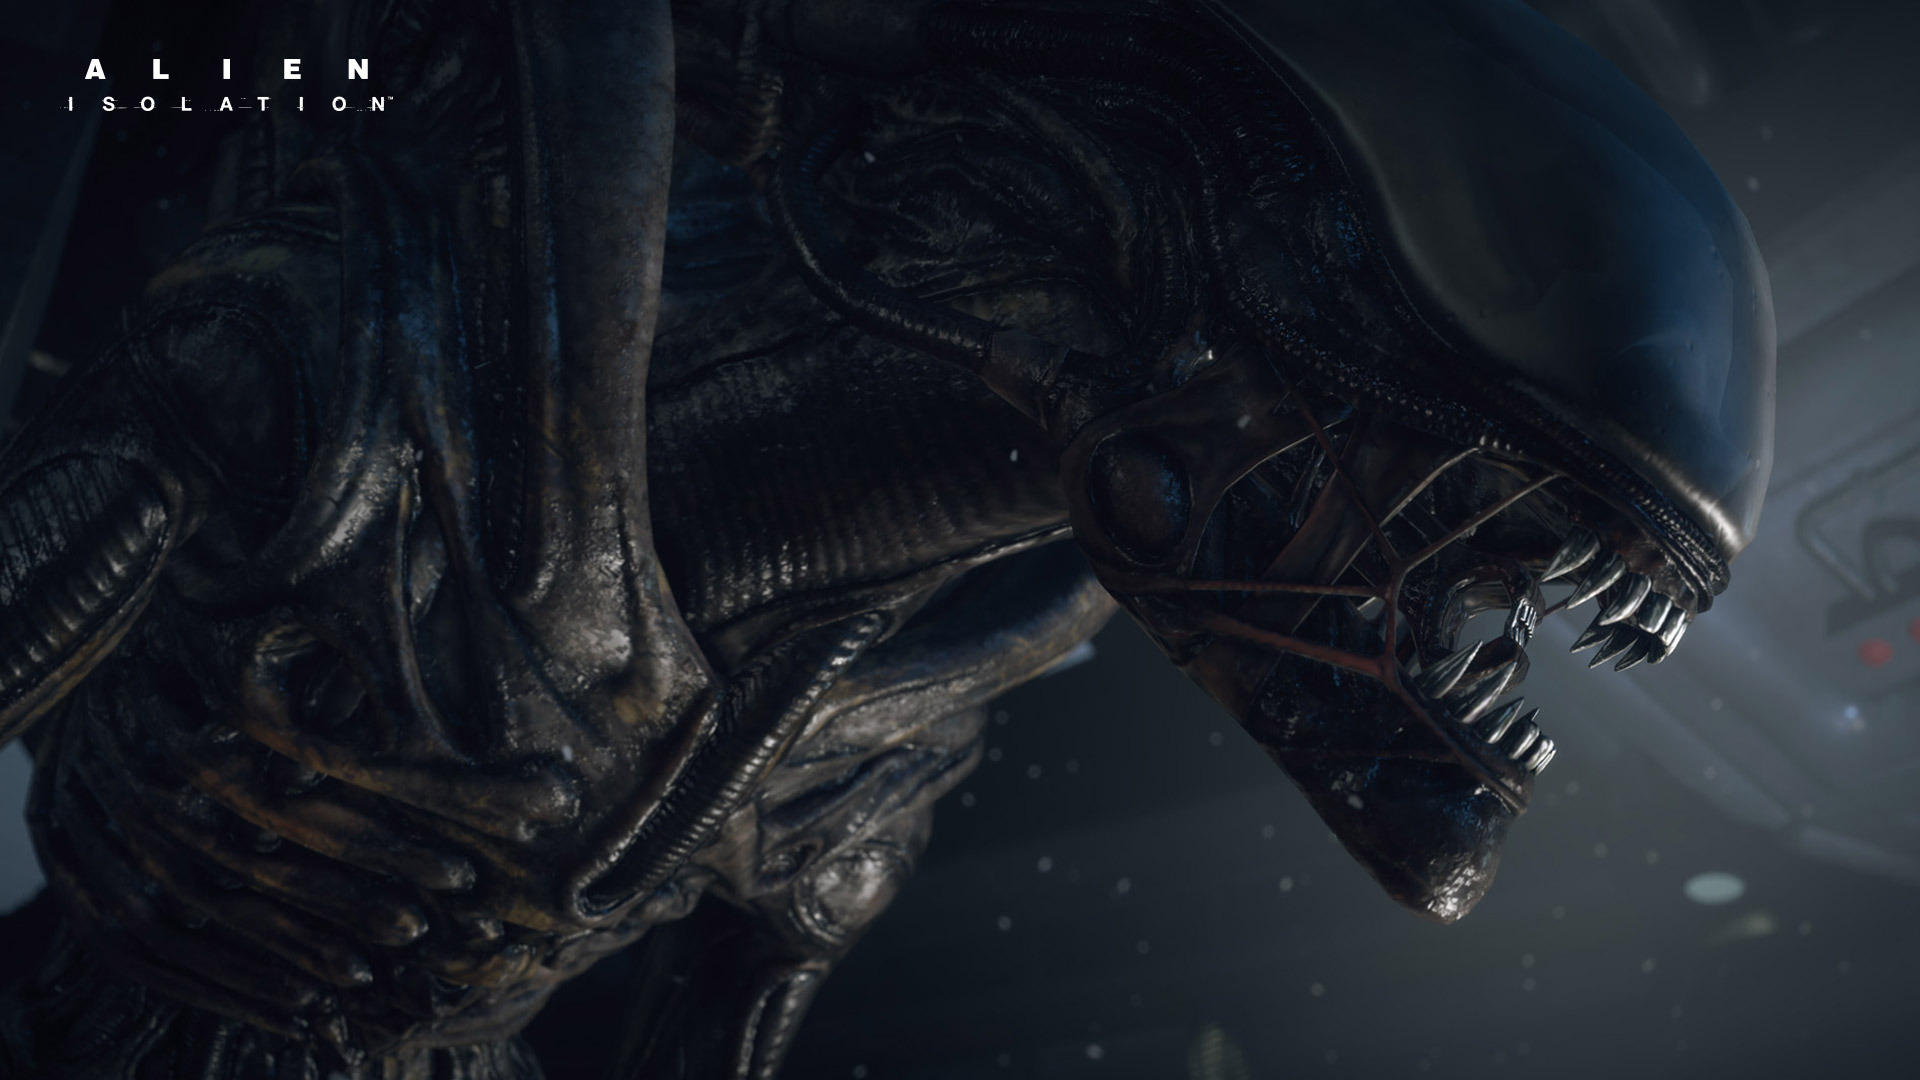 Alien-Isolation 0310